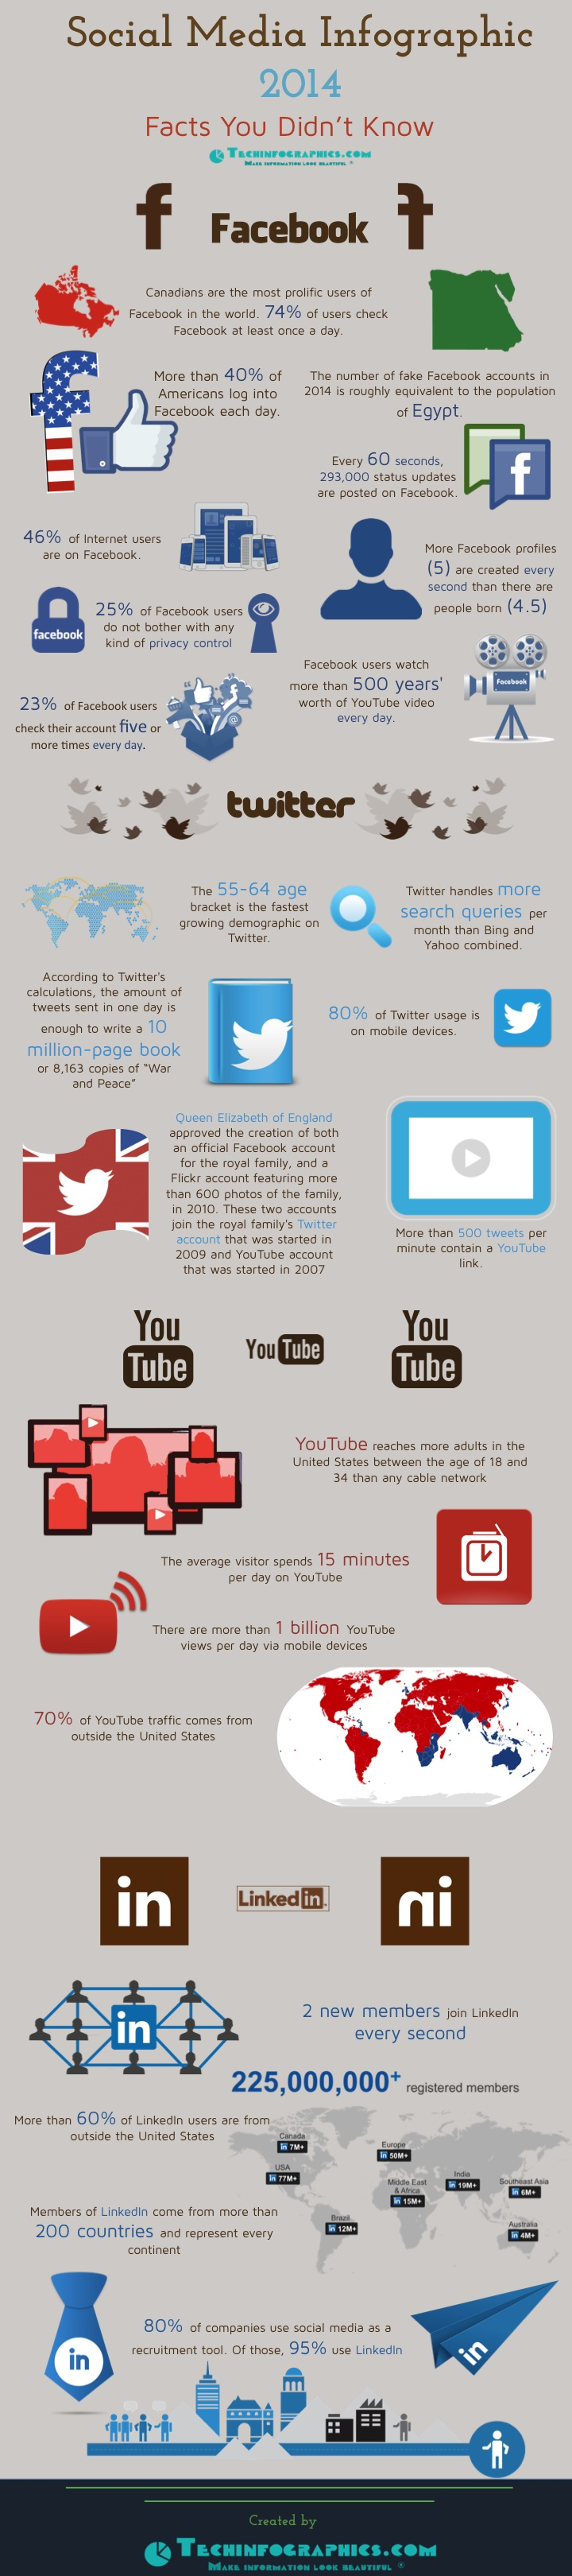 Social Media - Facts You Didn't Know - Infographic